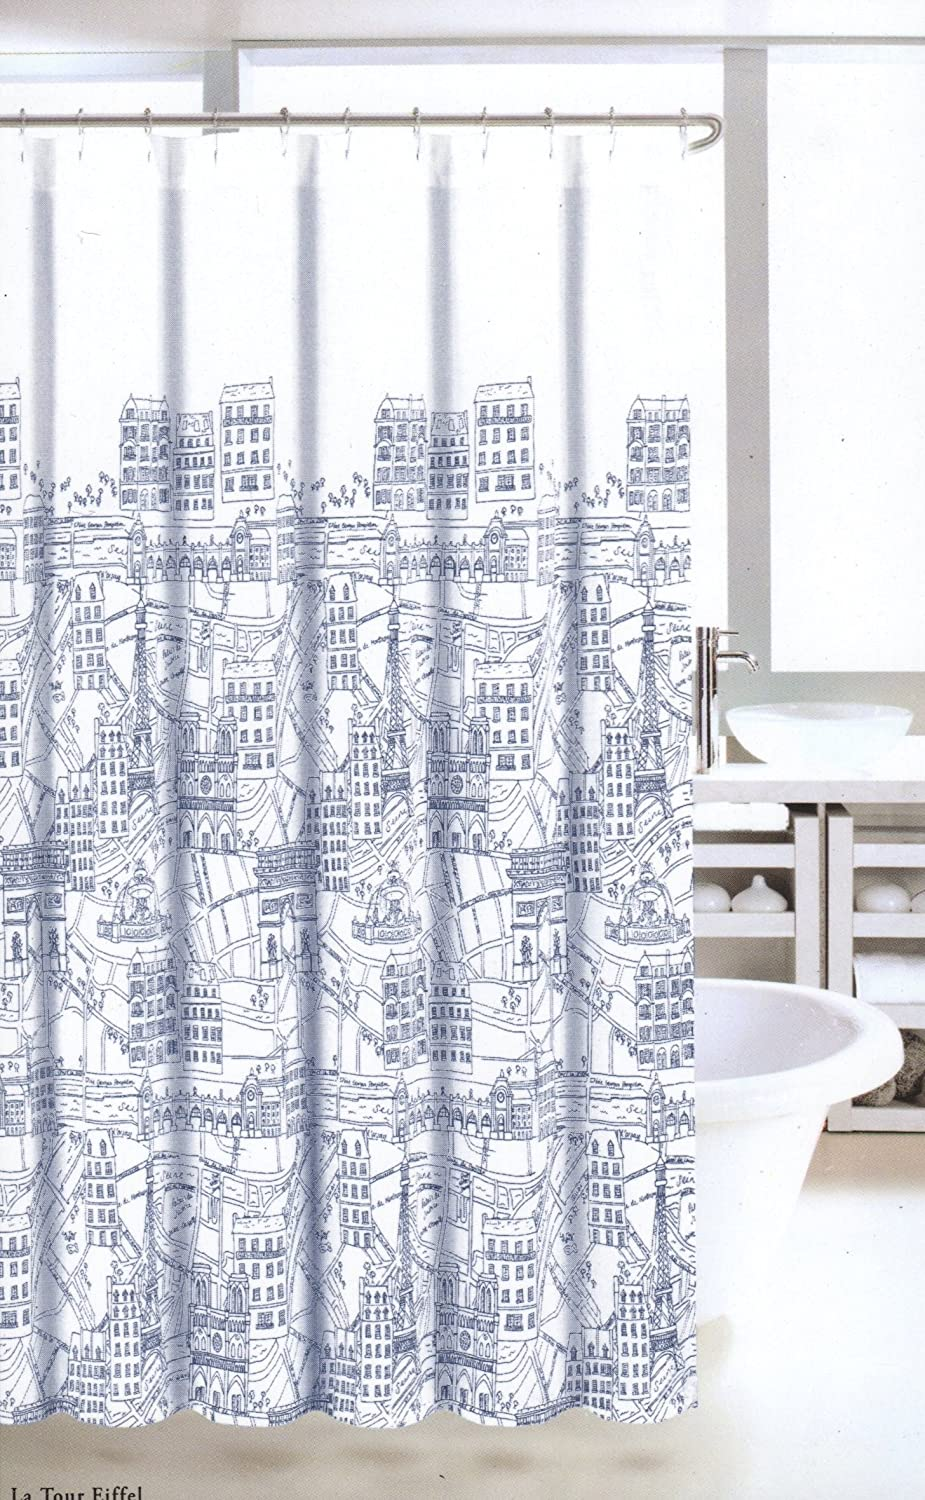 Amazoncom Nicole Miller Fabric Shower Curtain Navy Blue White - Paris map fabric